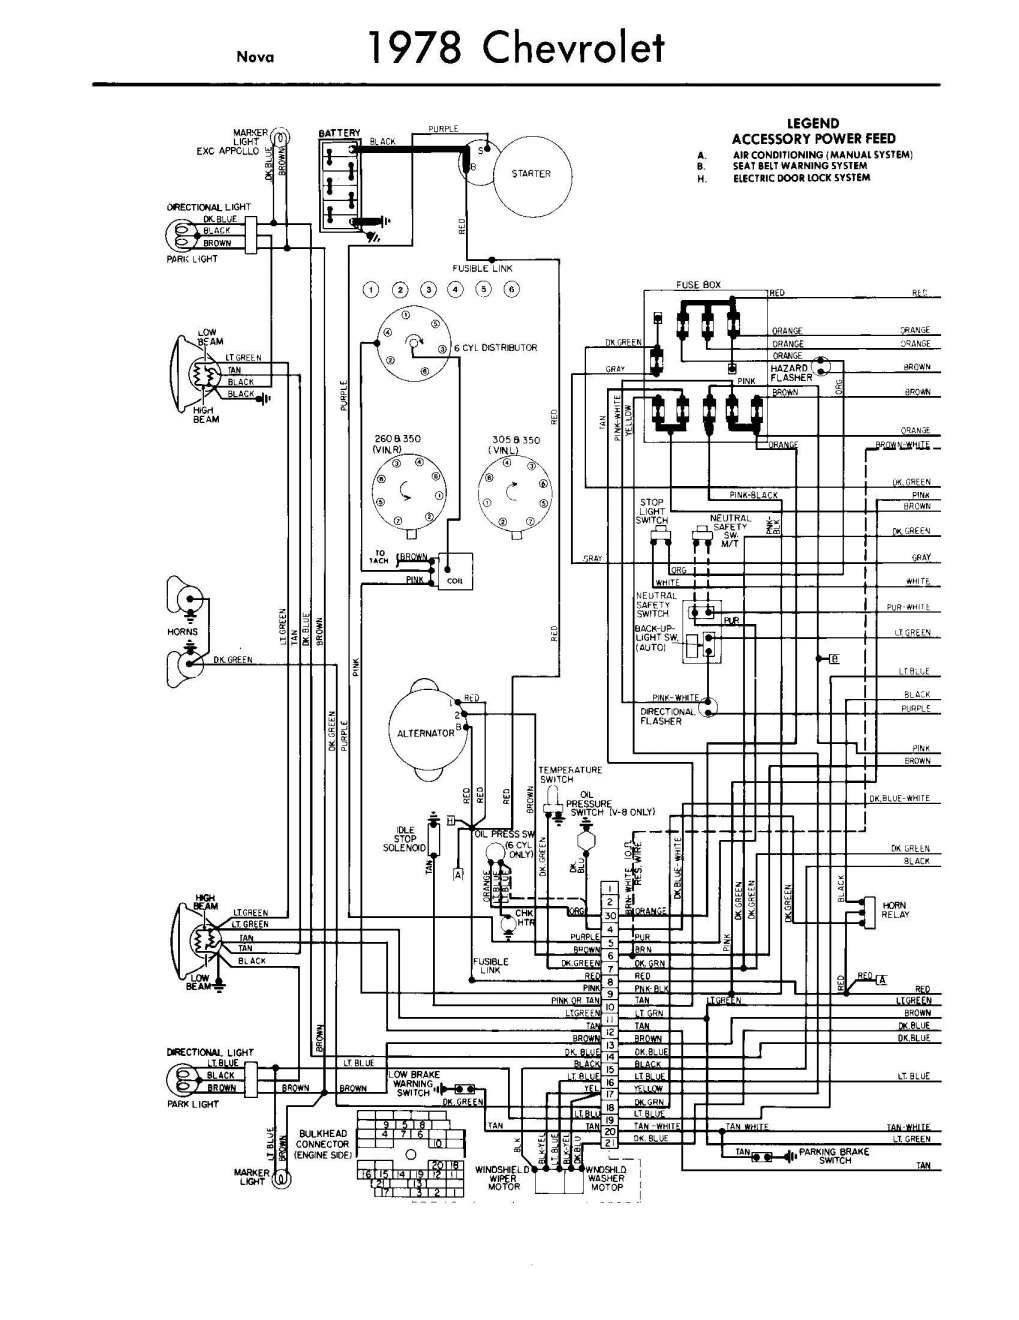 1988 chevy s10 wiring diagram 15 1988 chevy truck 305 fuse panel diagram truck diagram in  15 1988 chevy truck 305 fuse panel